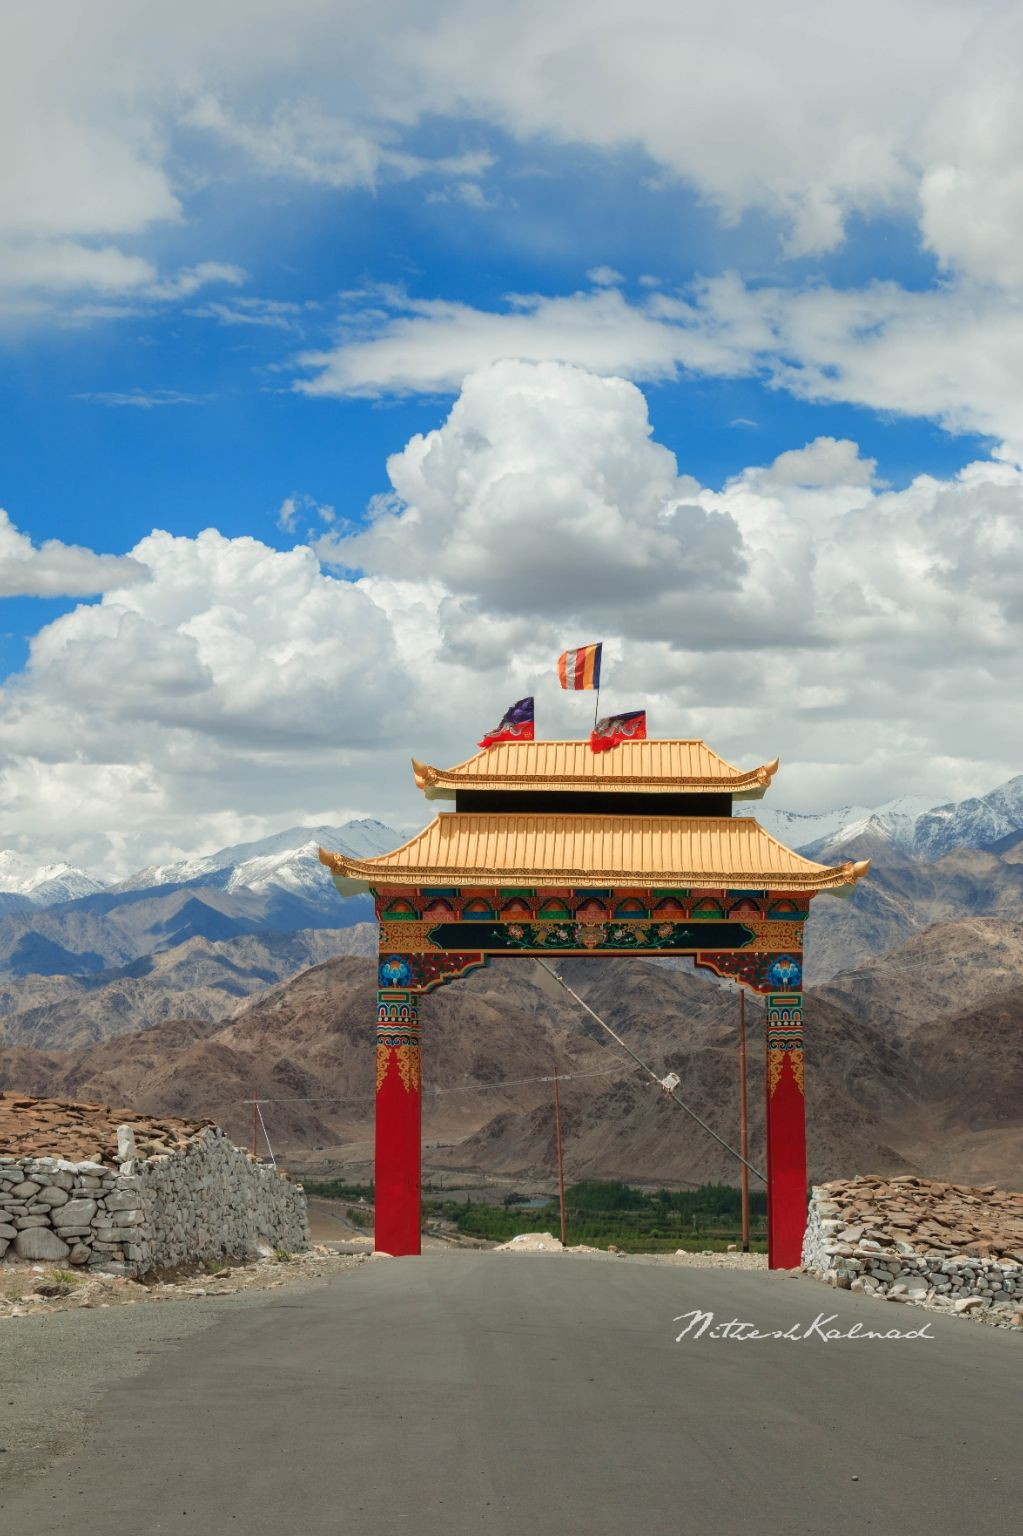 Photo of Ladakh By nitheshkalnad